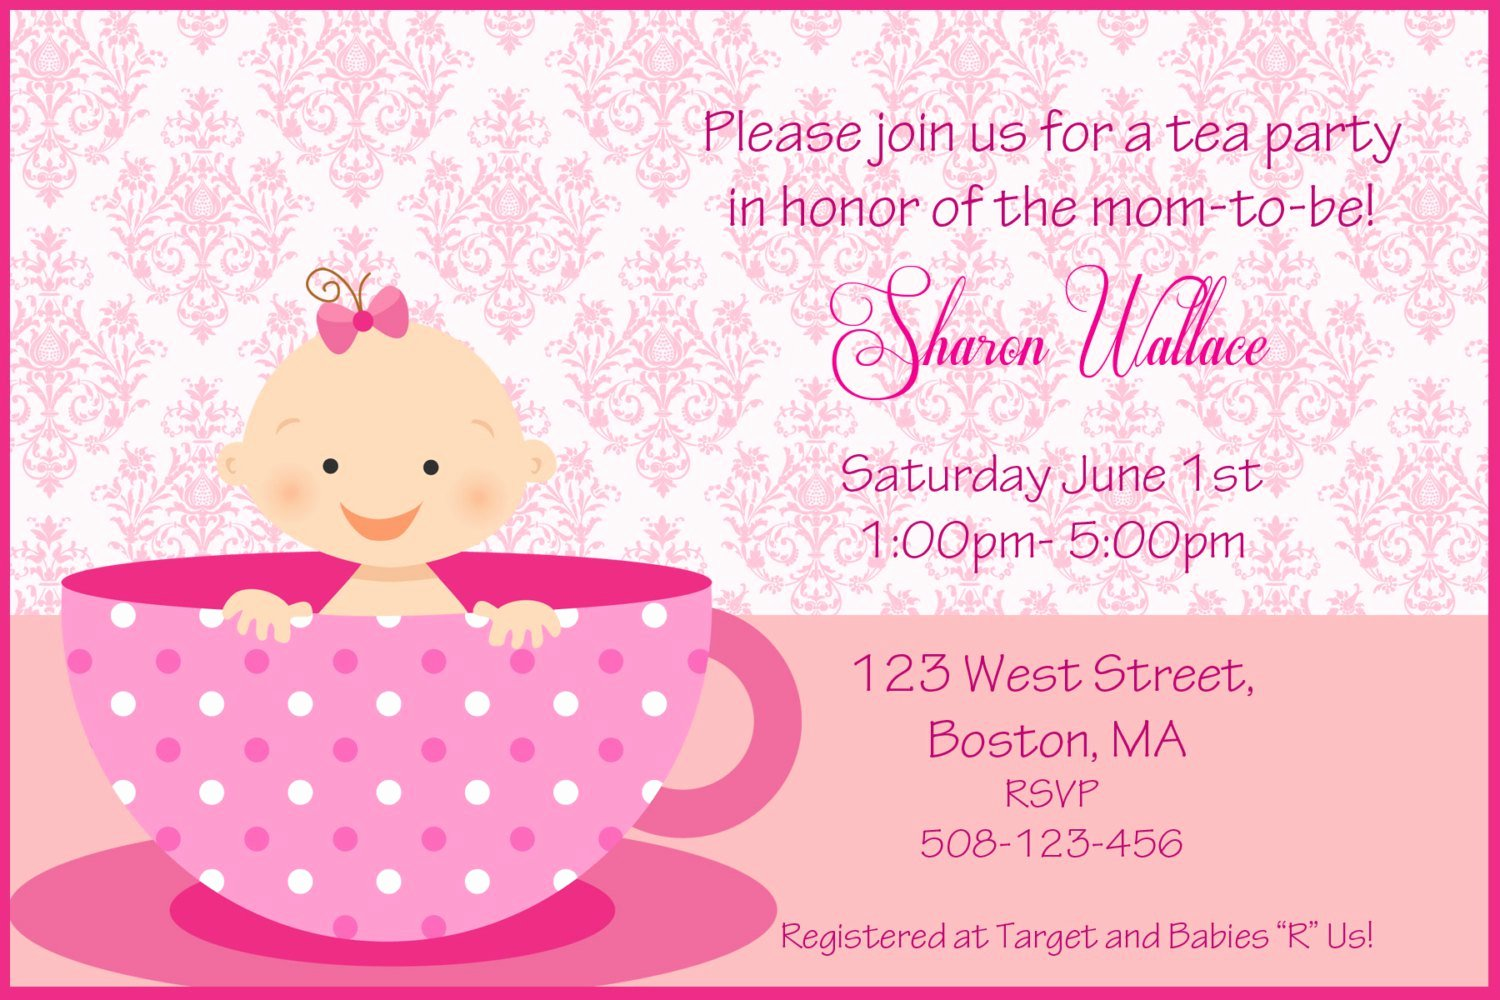 Template for Baby Shower Invitation Fresh Tea Party Baby Shower Invitations